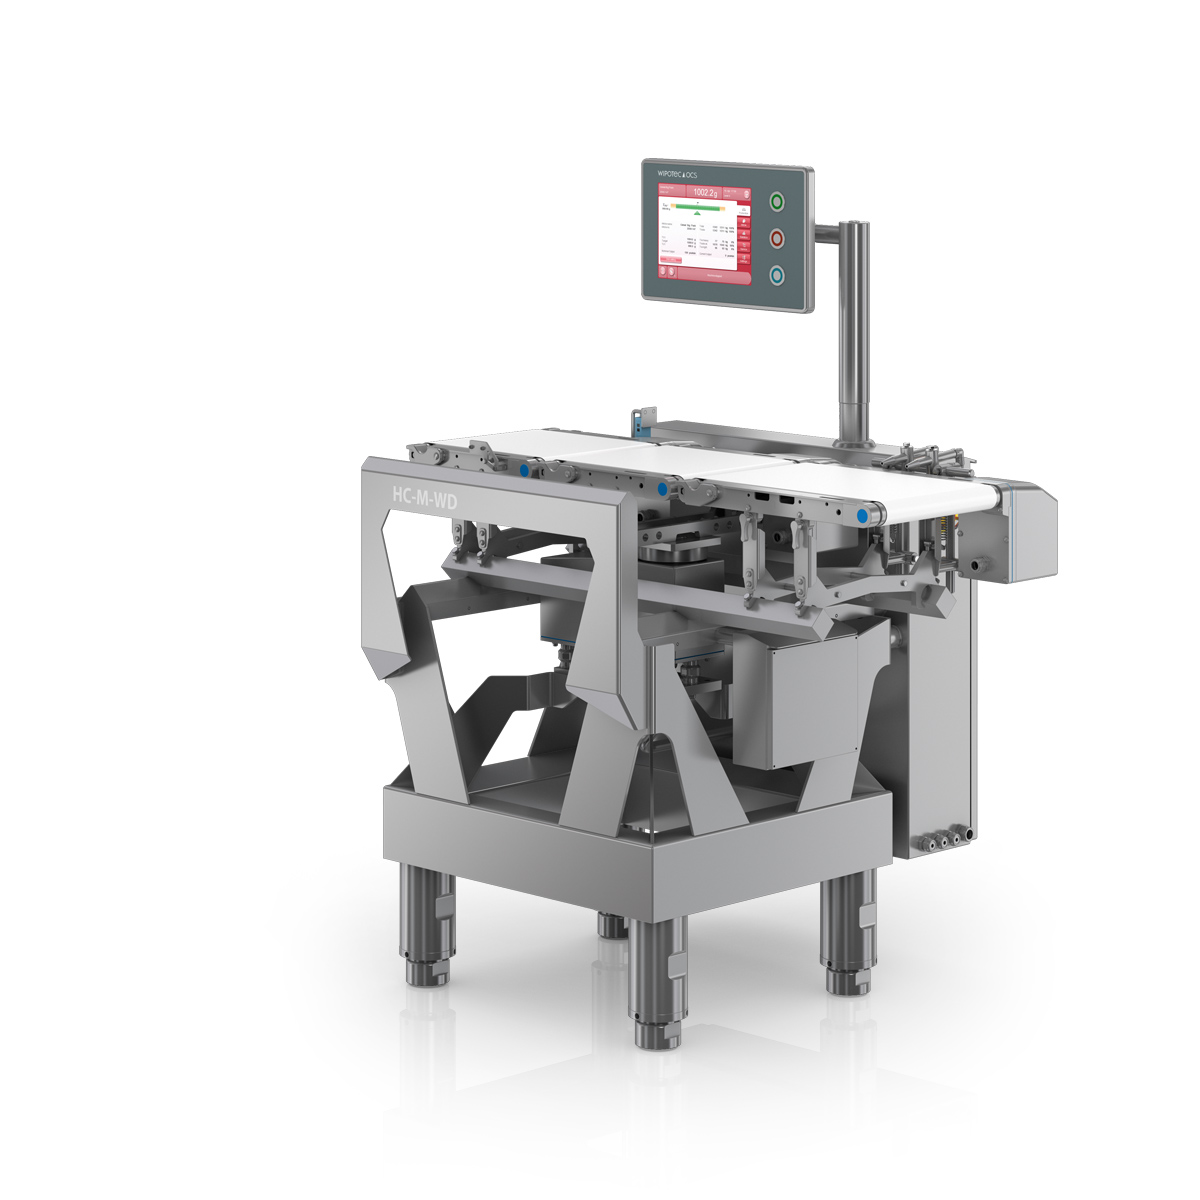 Checkweigher HC-M-WD right view